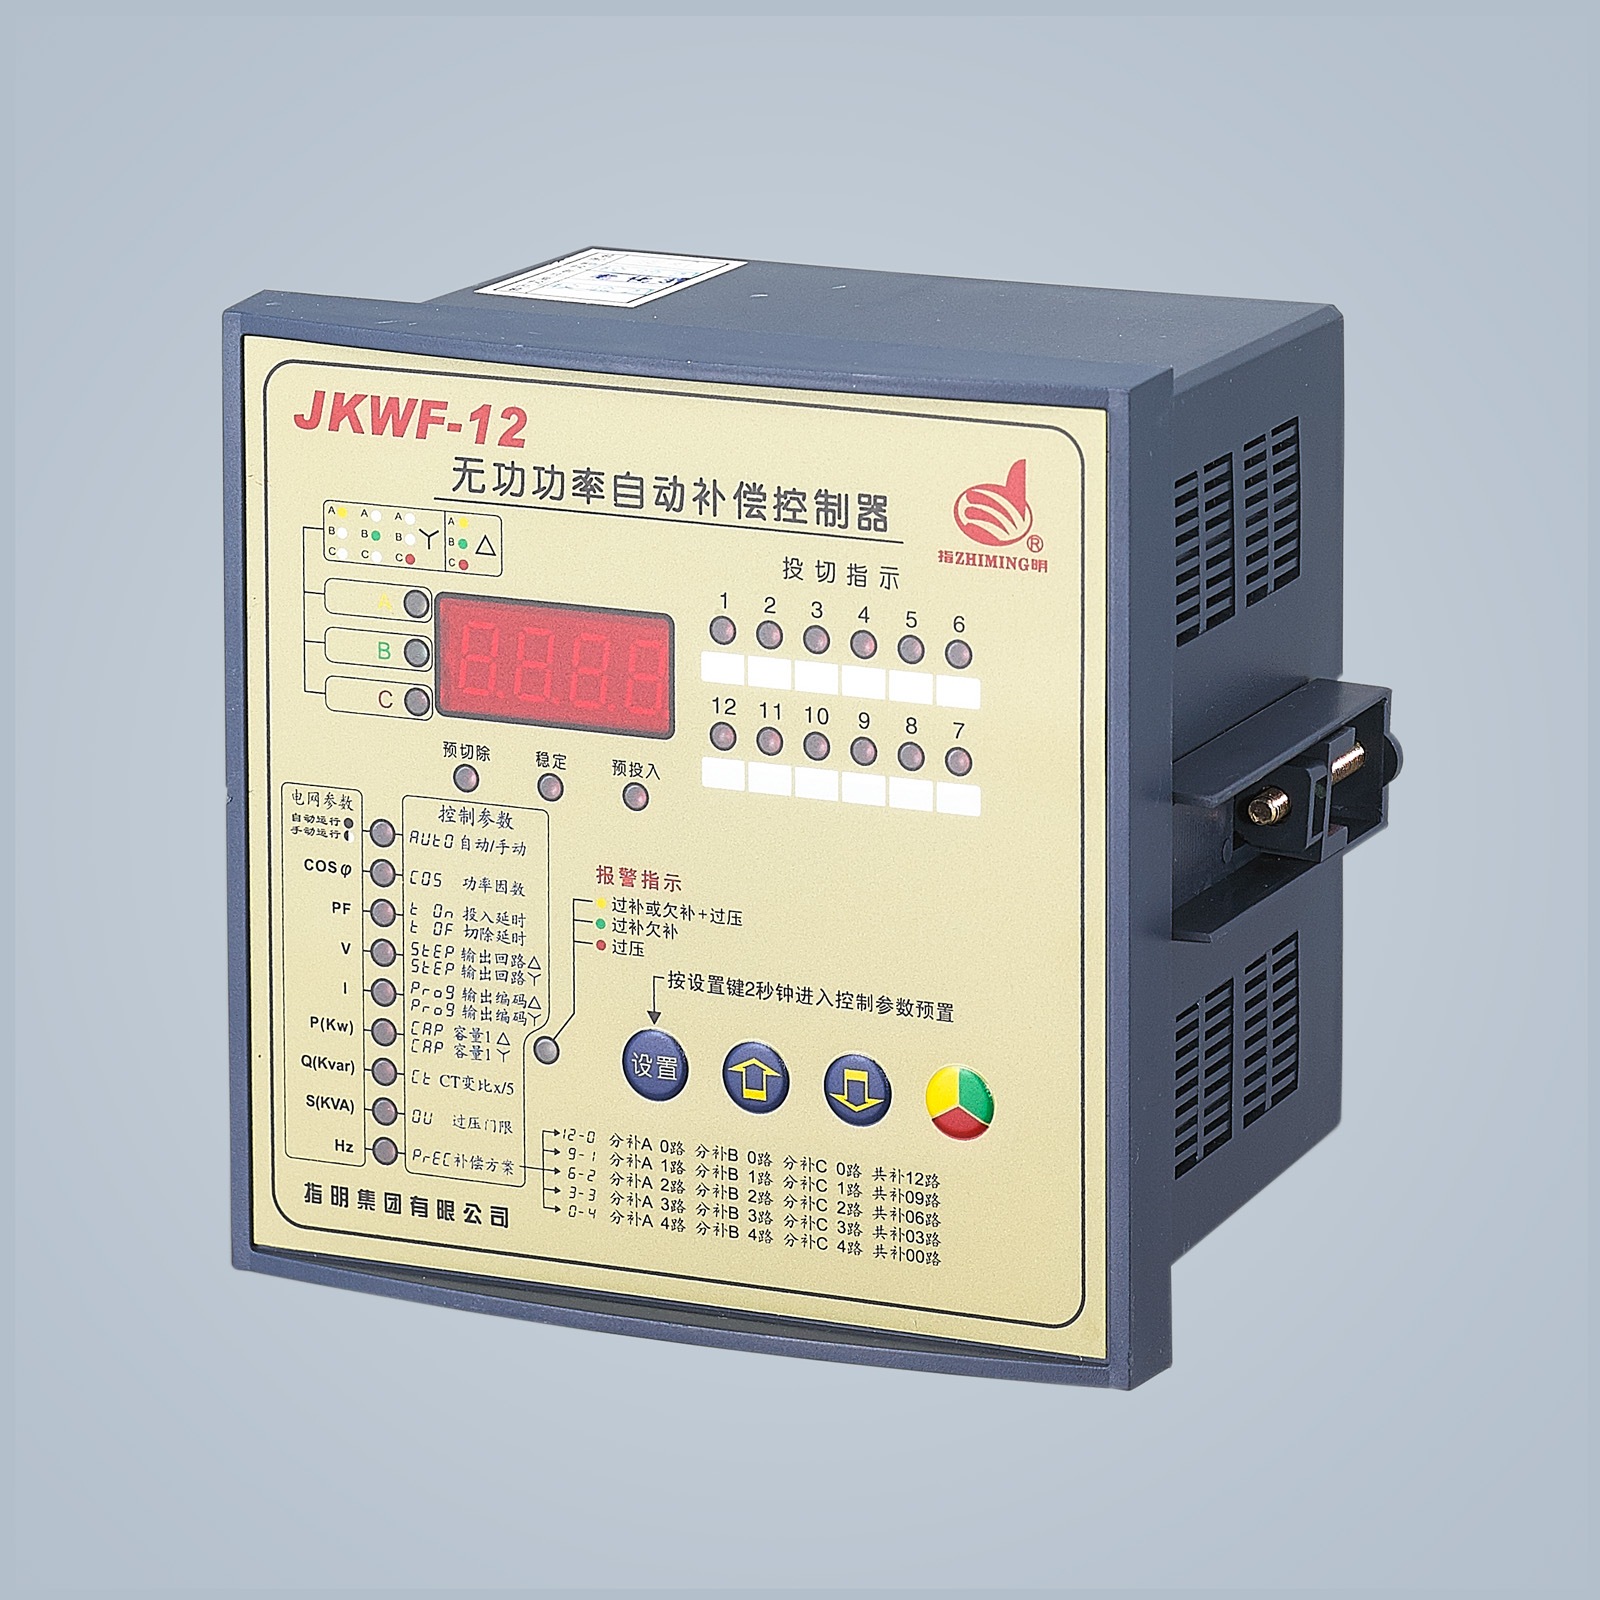 JKWF-12 Series Reactive power auto-compen sation controller